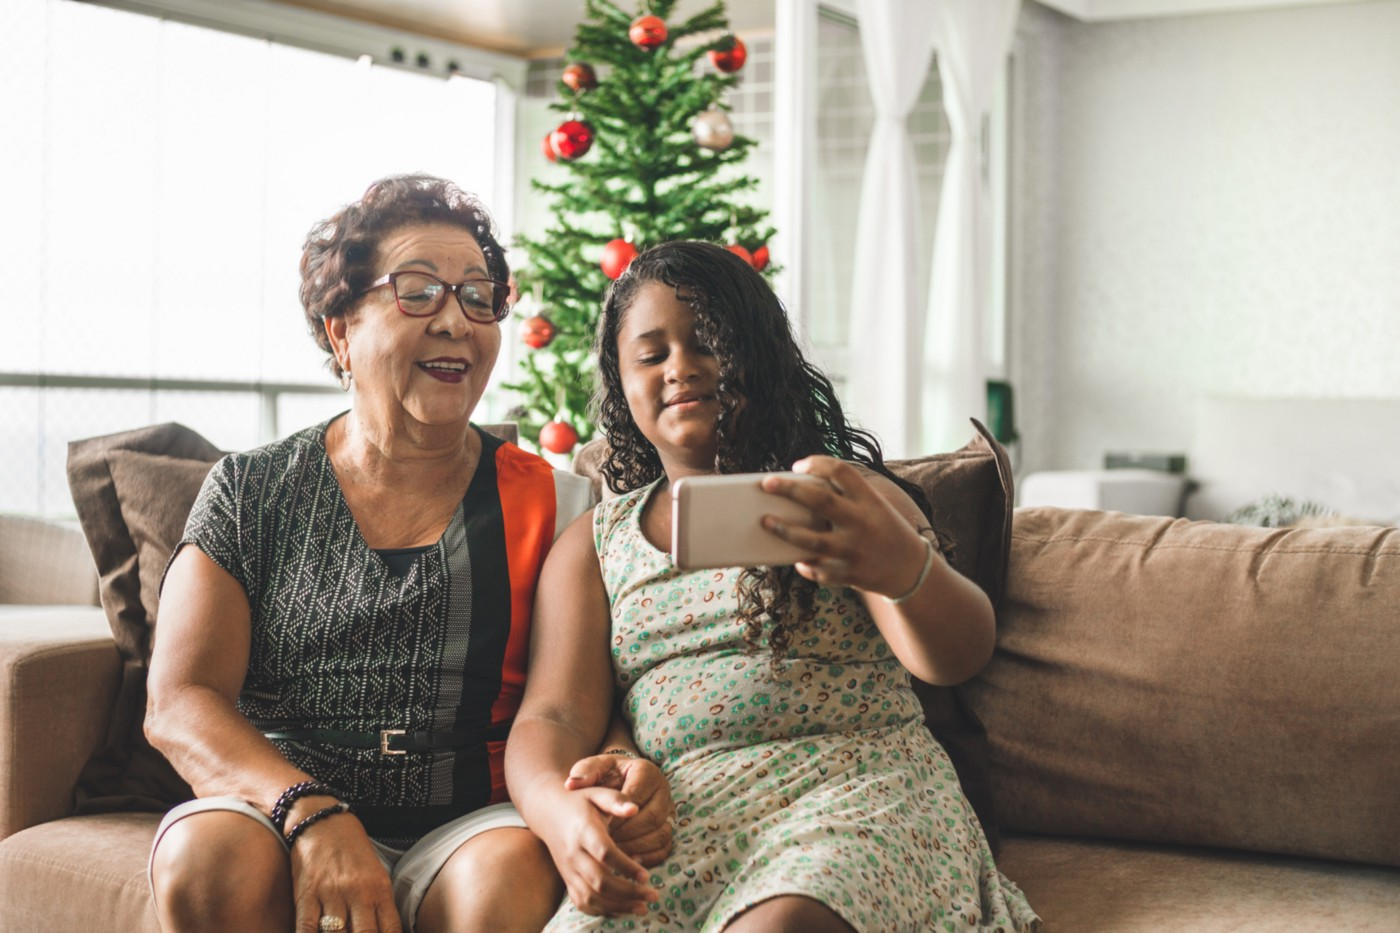 A young girl and her grandmother take a selfie on their couch in front of a Christmas tree.